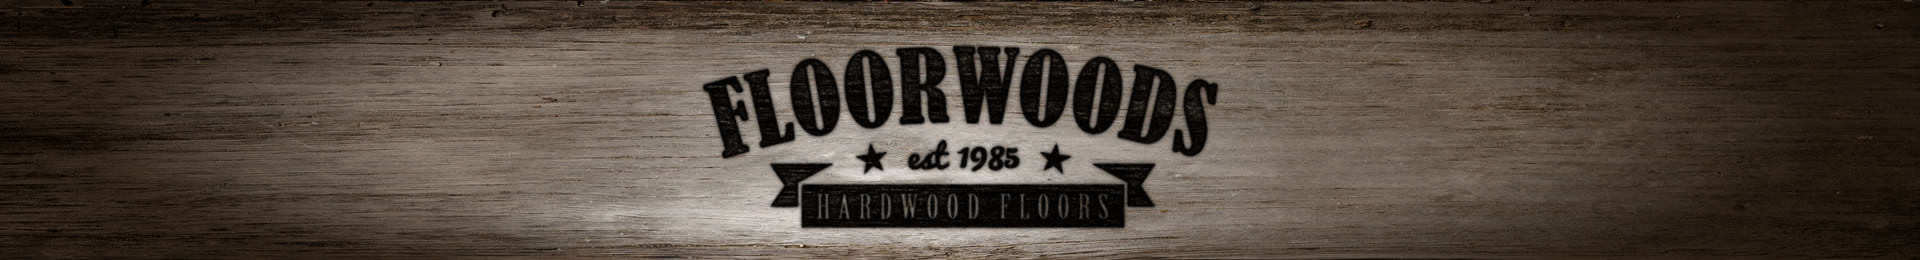 Floor Woods Branded Logo